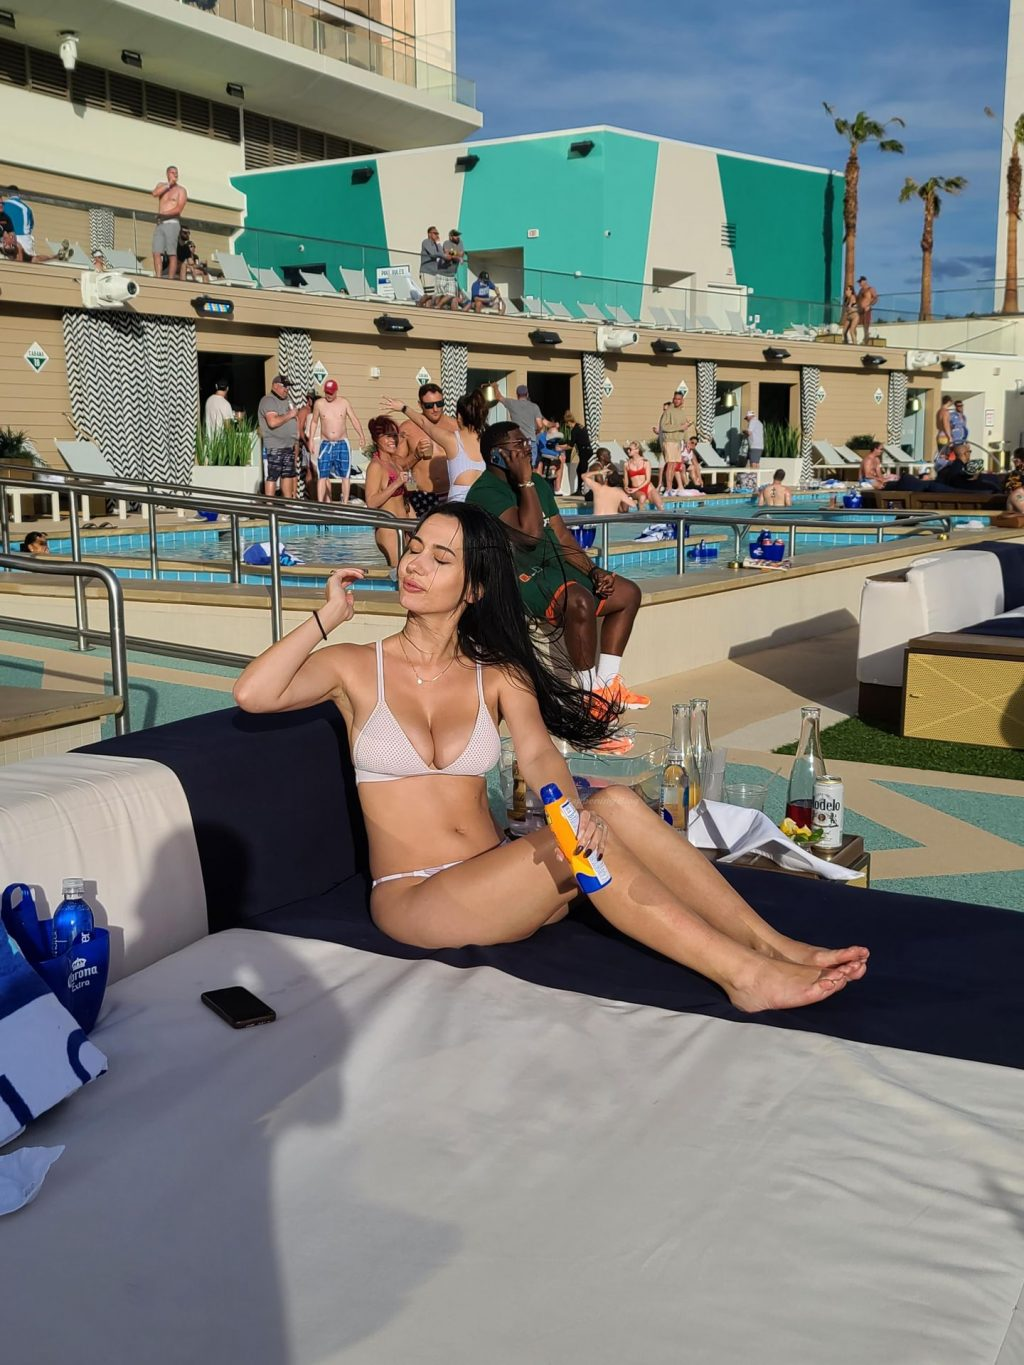 Iva Kovacevic Stuns in a Small Bikini During March Madness in Las Vegas (41 Photos)